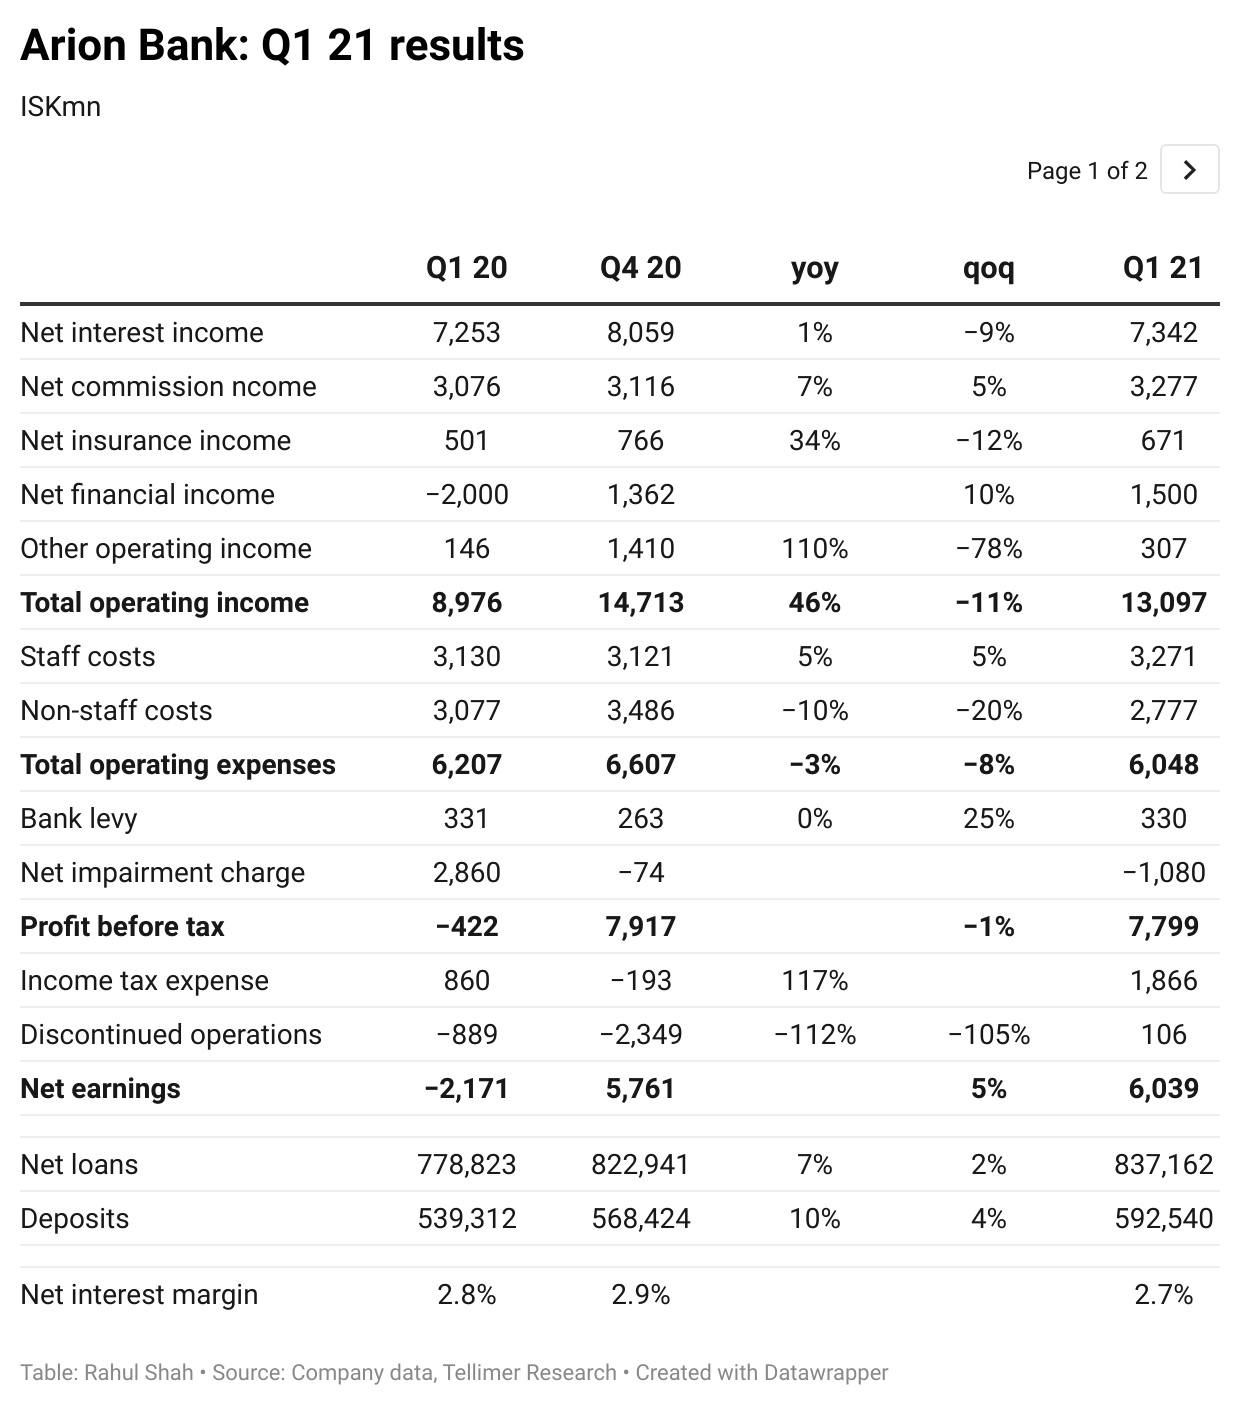 Arion Bank: Q1 21 results